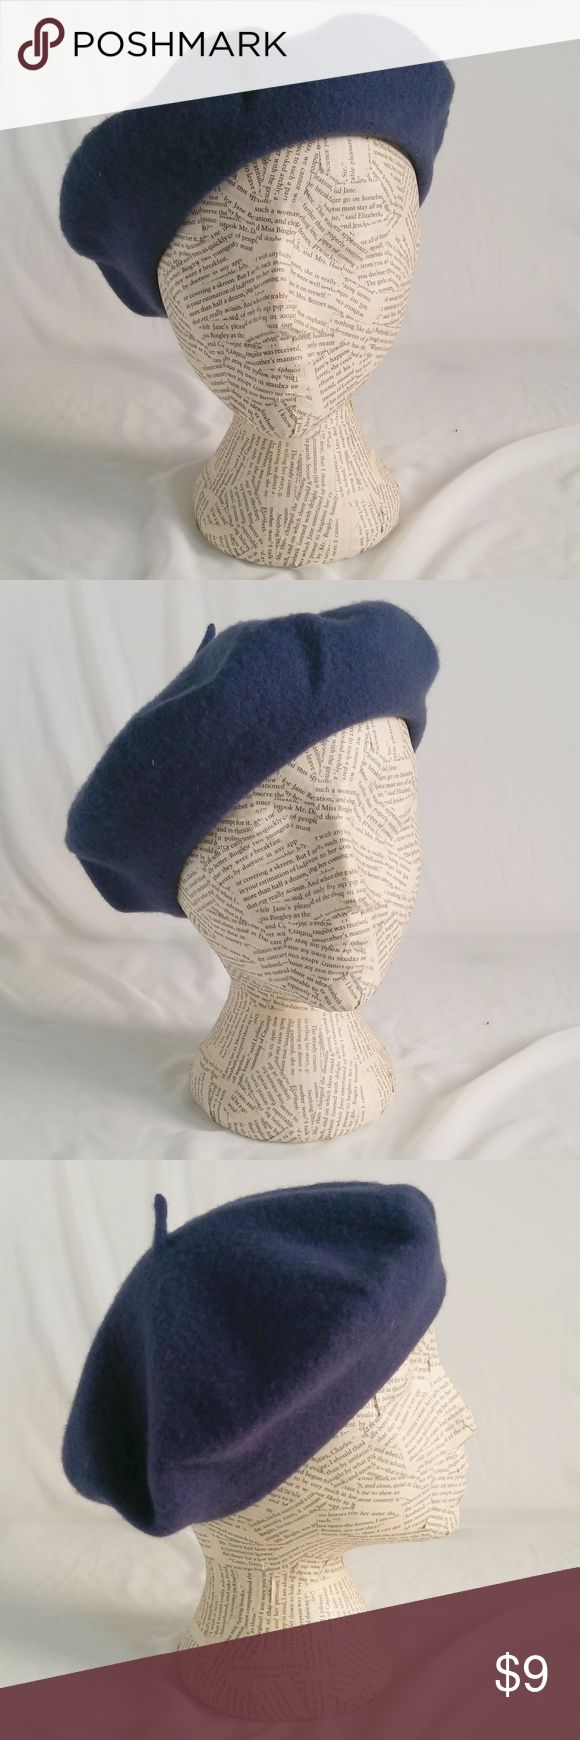 """Hollywood Wool Beret So berets are trending again? That's what I heard...so why not try out this beautiful blue. Super soft wool, once worn on stage. Otherwise in excellent condition.  Brand: Hot in Hollywood Size: 24""""  Color: Royal Blue Fabric: 100% Wool Care: Dry Clean Imported Excellent Used Condition  Reasonable Offers Welcome! Bundle and Save on Shipping! Hot in Hollywood Accessories Hats"""